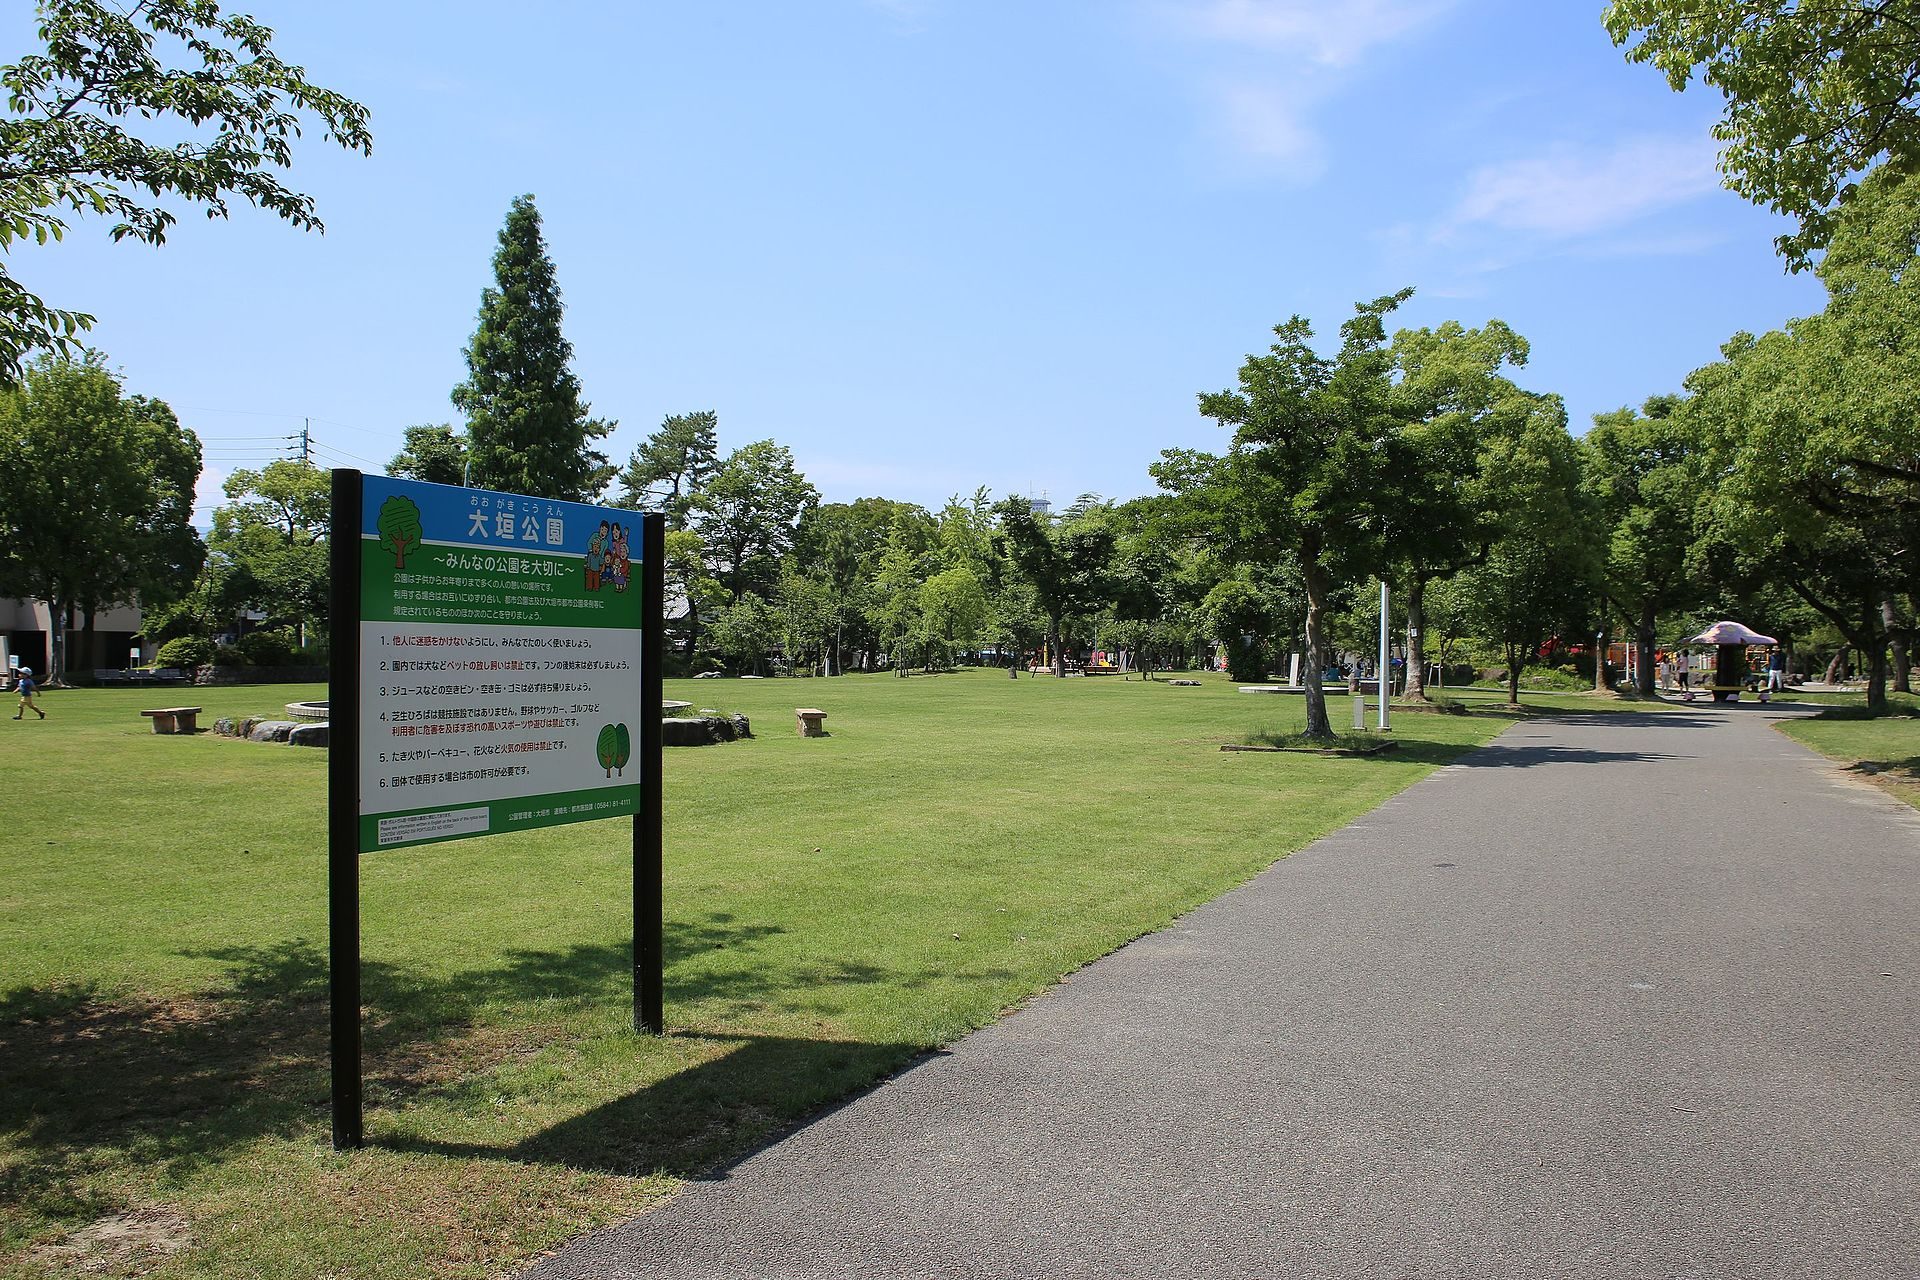 https://upload.wikimedia.org/wikipedia/commons/thumb/5/5f/Ogaki-koen_Park_20160618.jpg/1920px-Ogaki-koen_Park_20160618.jpg